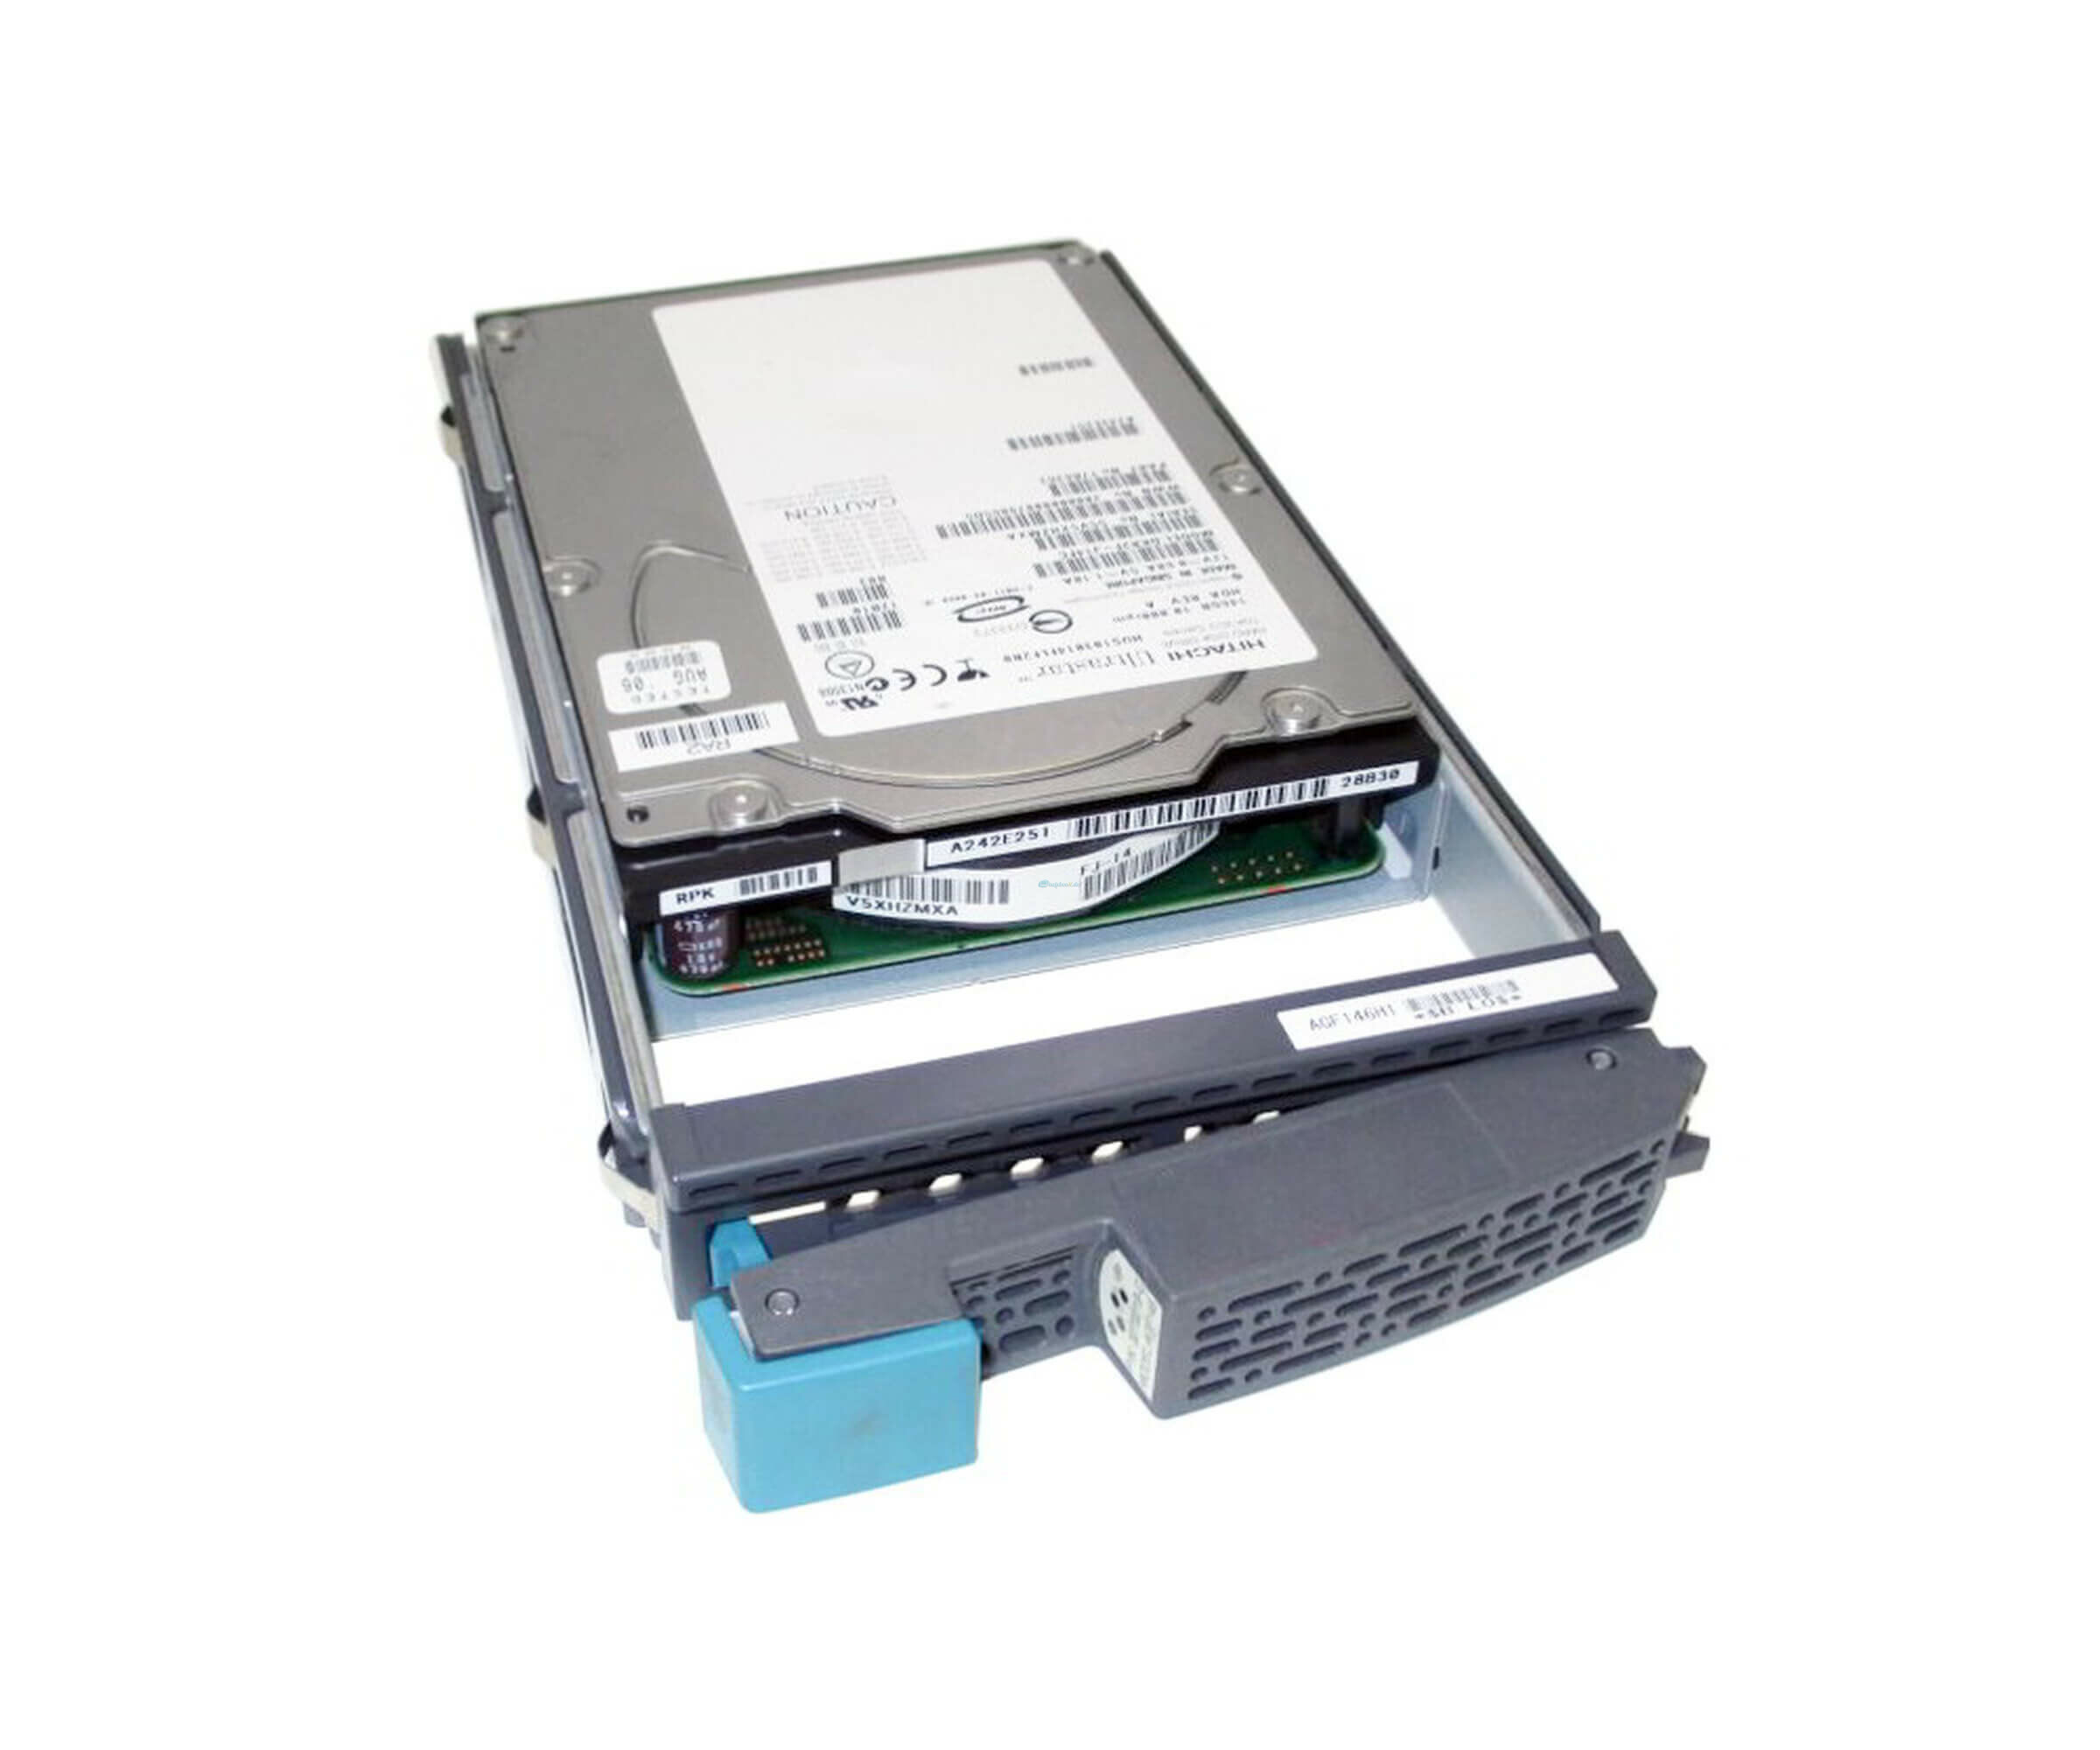 Hitachi DKR2F-J14FC - Festplatte - 146 GB - 10000rpm - 3.5` - Fibre Channel